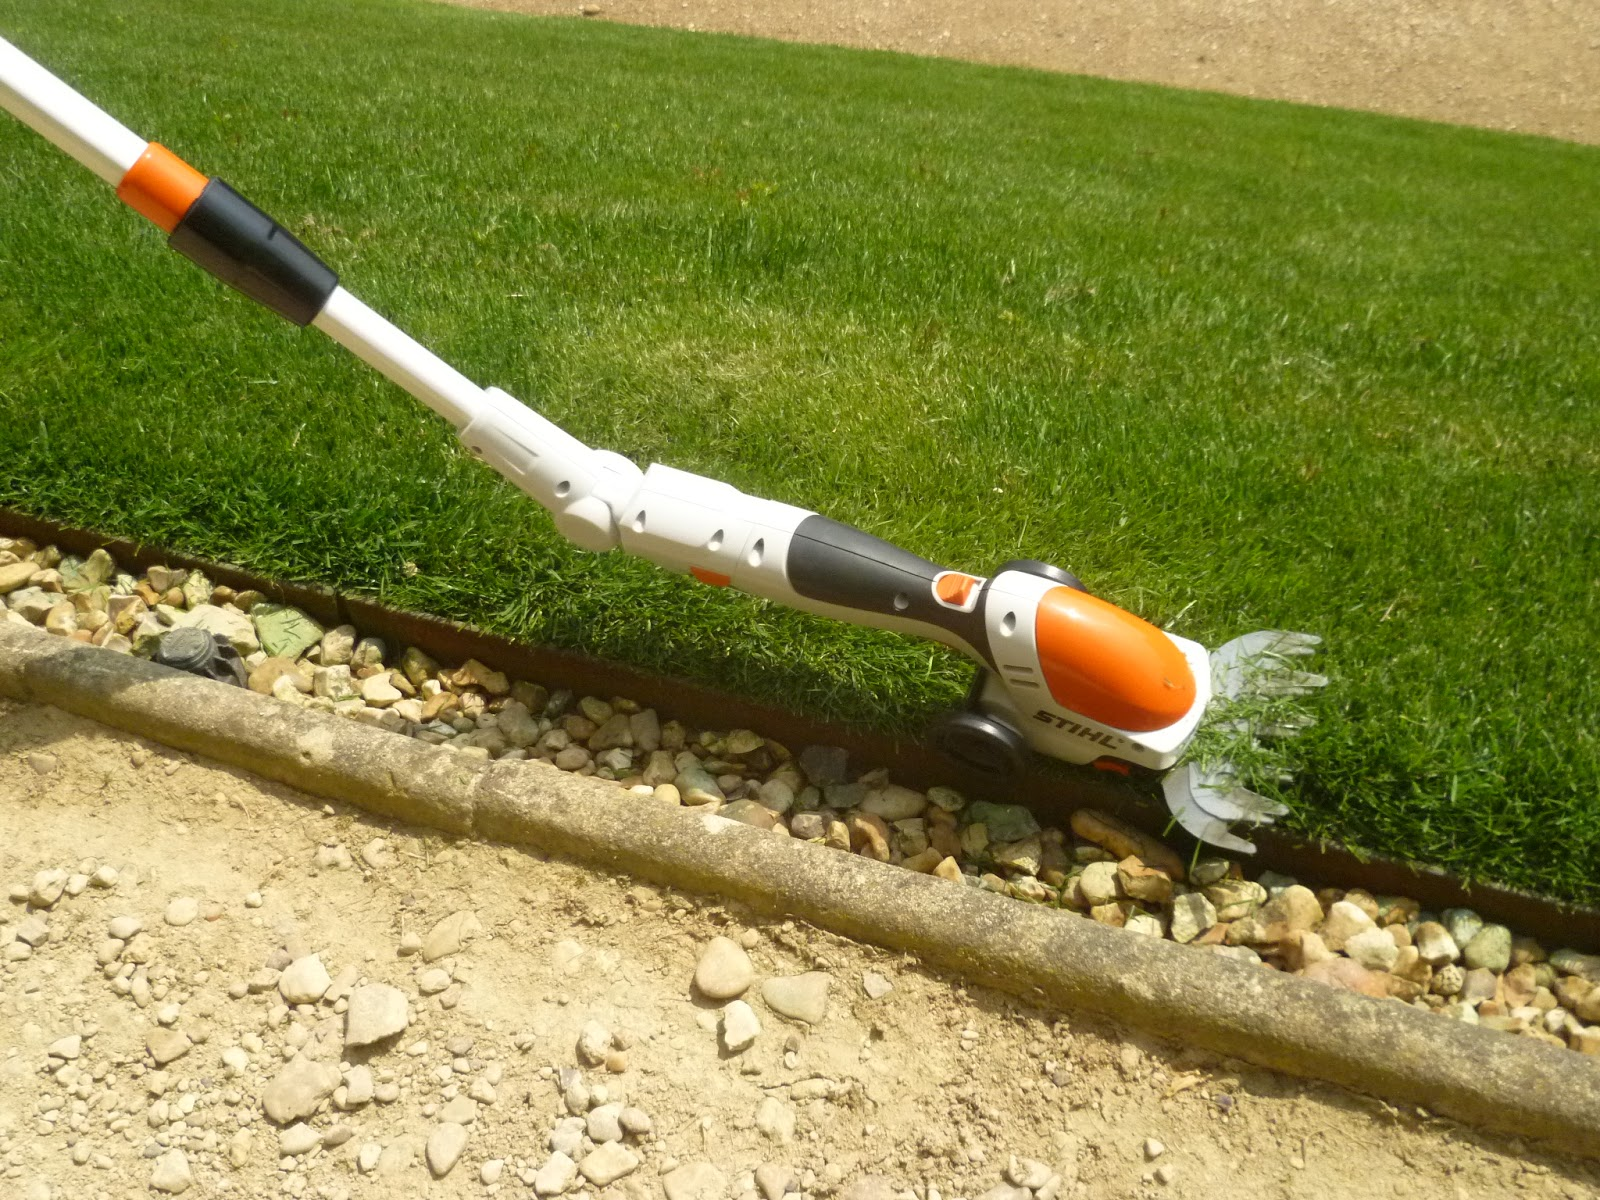 worcester college gardeners stihl hsa 25 cordless shrub and grass shears. Black Bedroom Furniture Sets. Home Design Ideas